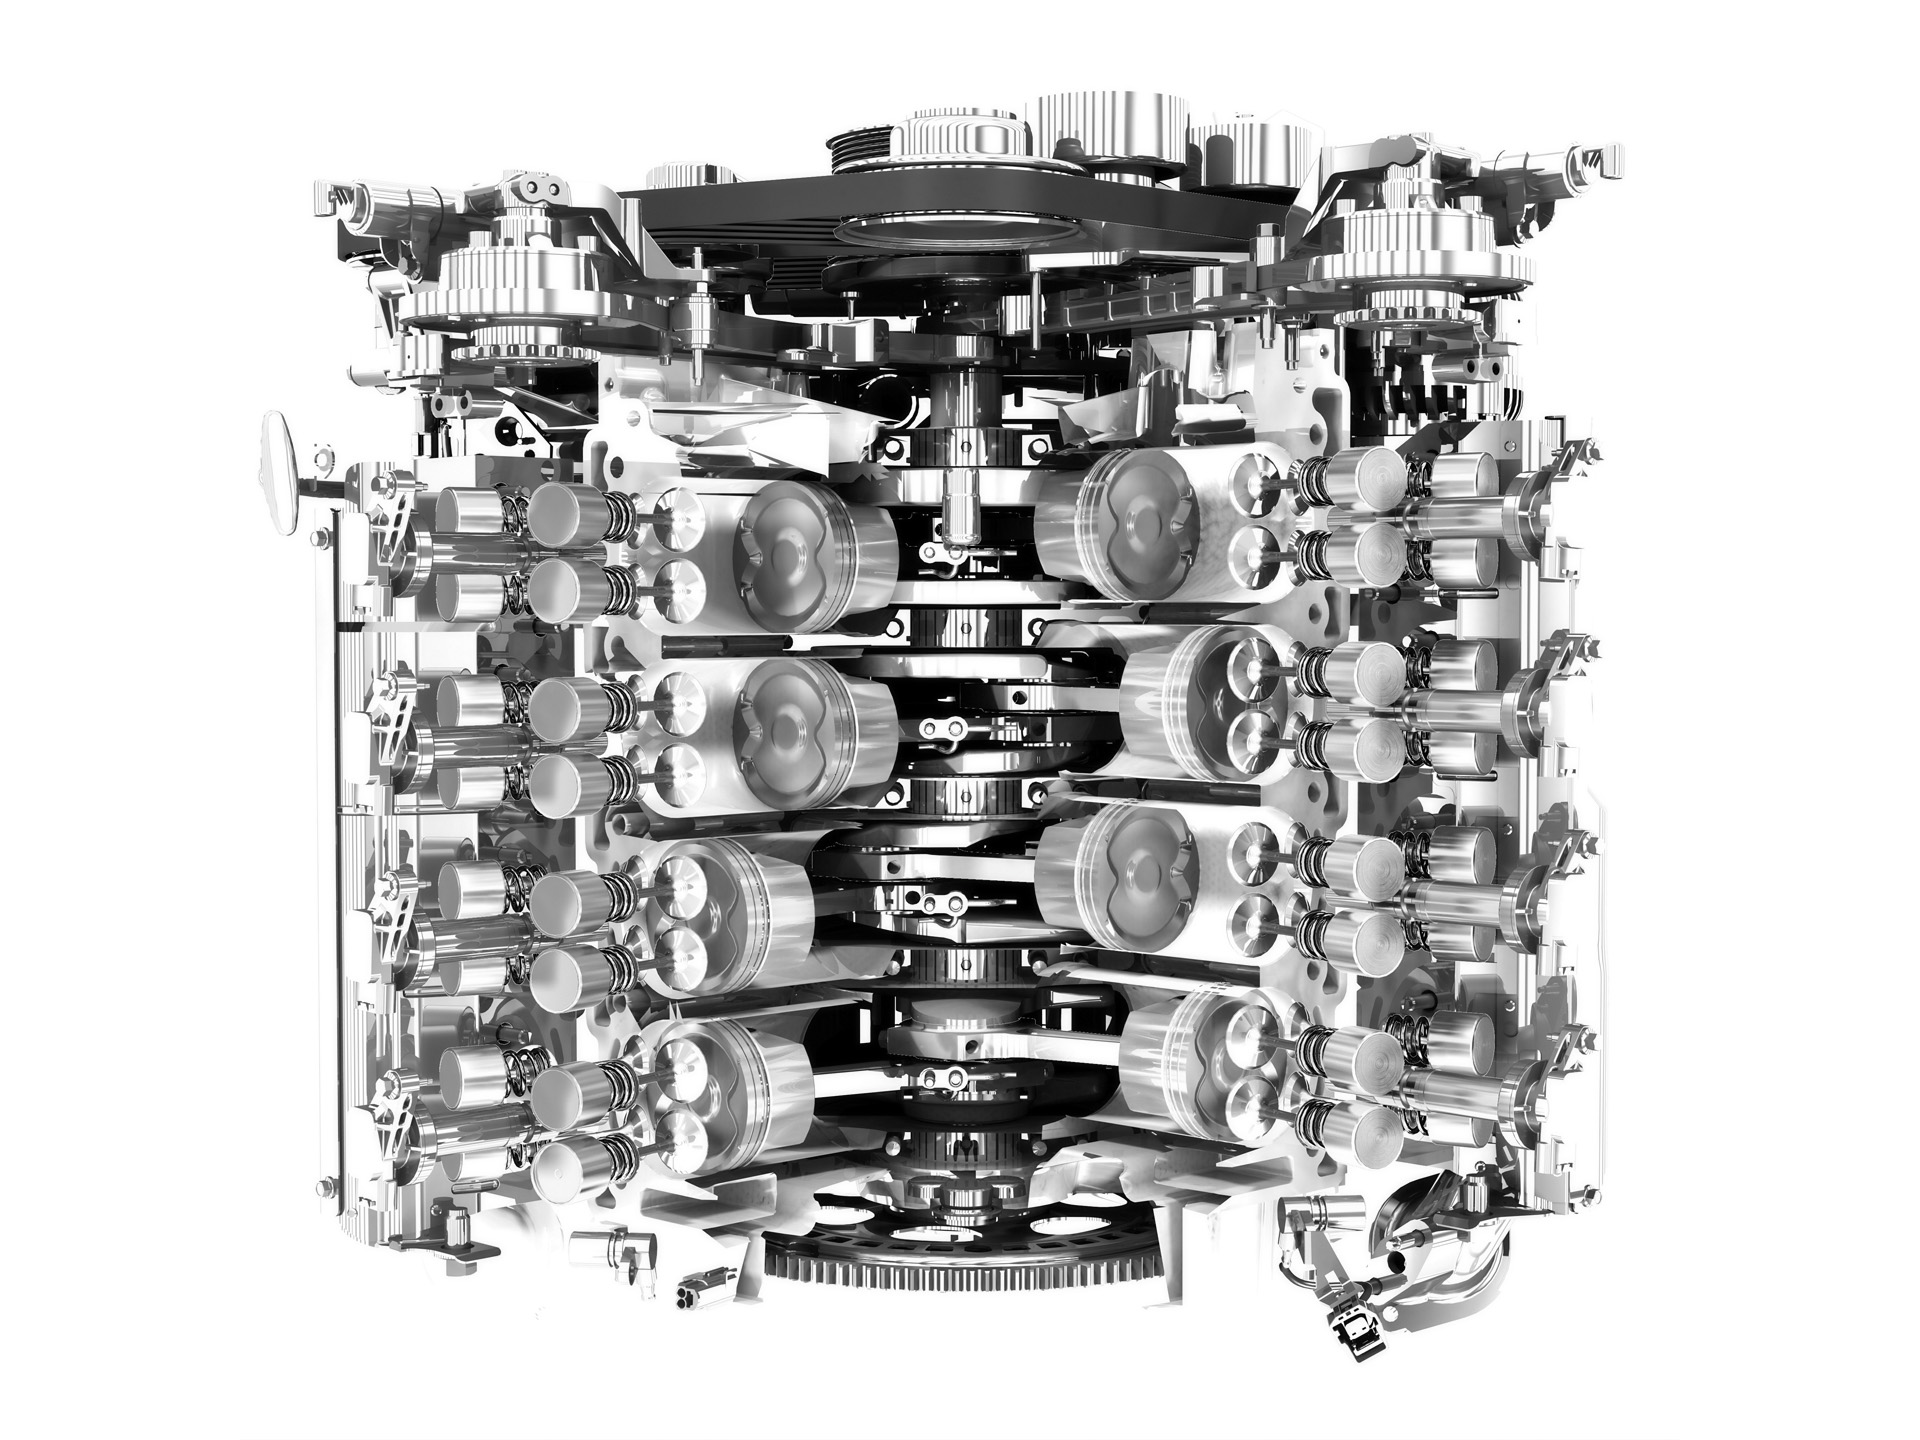 Sample P1288 Engine